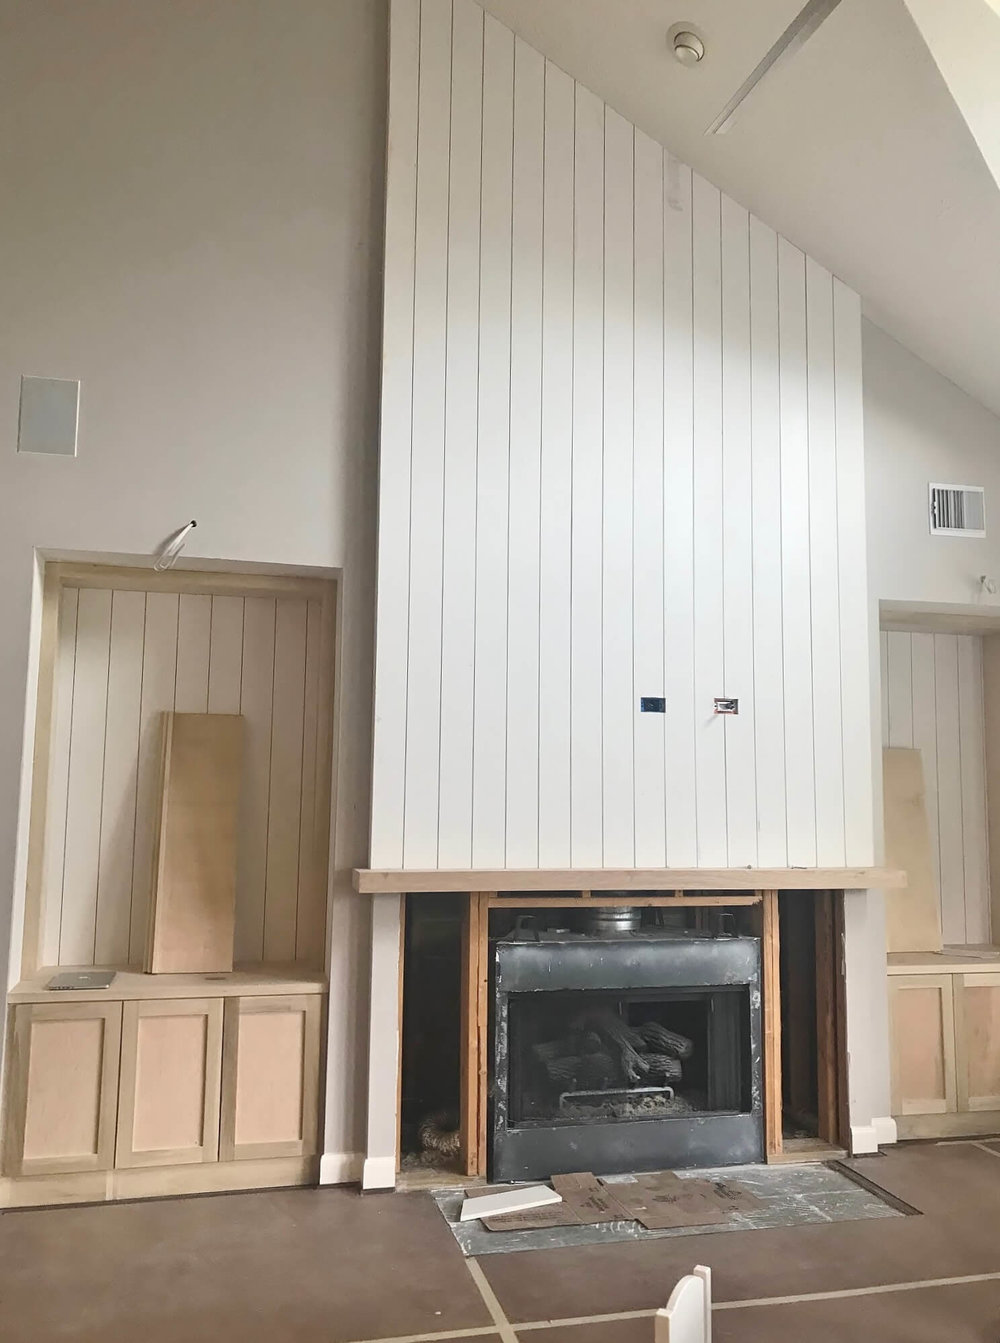 IN PROGRESS - This new fireplace wall has vertical paneling and symmetrical built-ins on each side for a cleaner look. We'll have two library arm type light fixtures above the built-ins to illuminate the open shelving on each side. #shiplap #fireplaceremodel